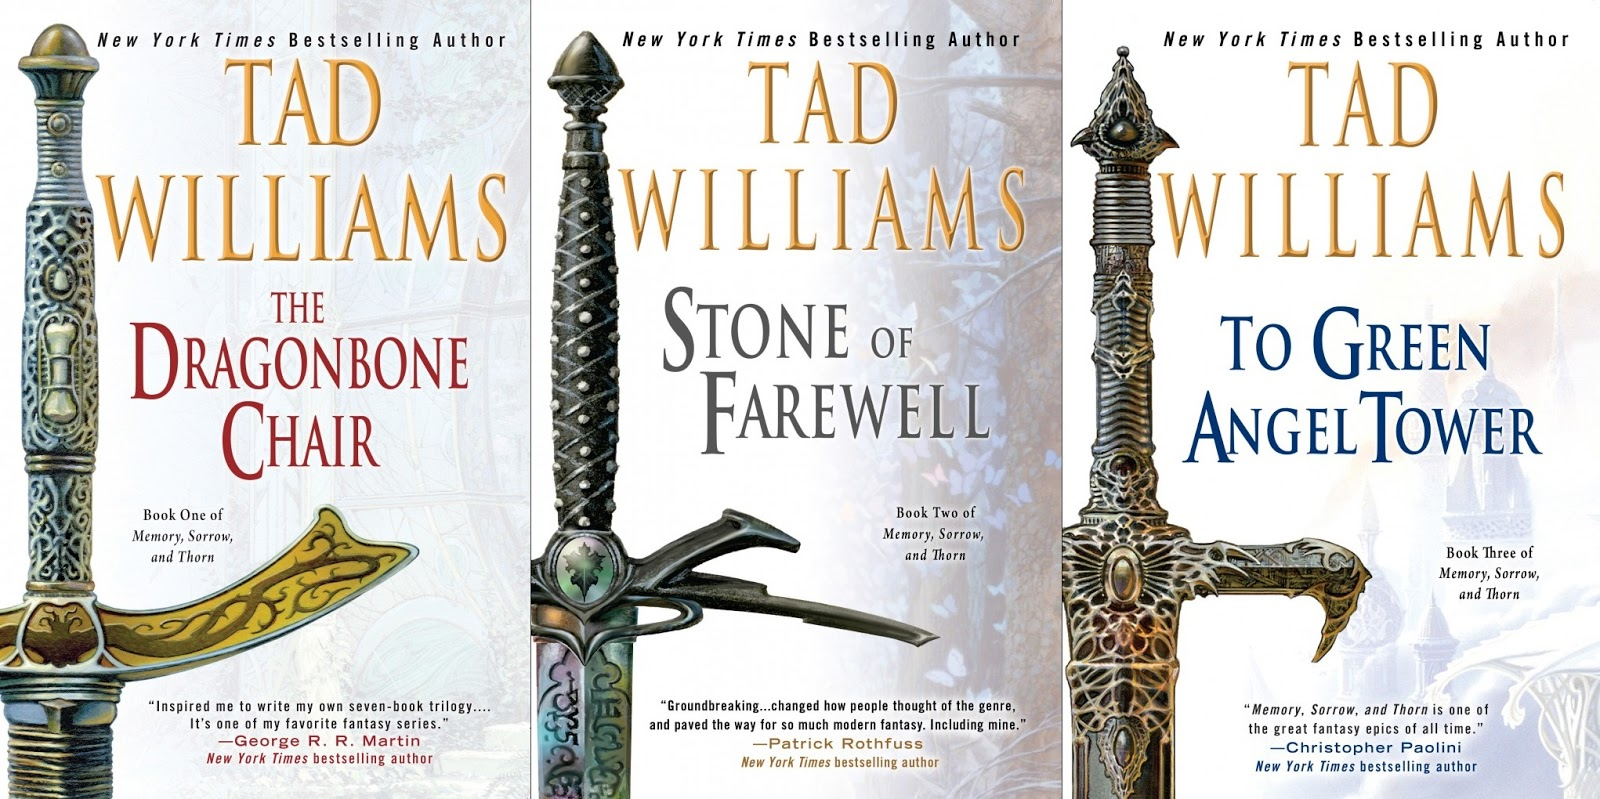 memory, sorrow and thorn and its literary legacy | tad williams